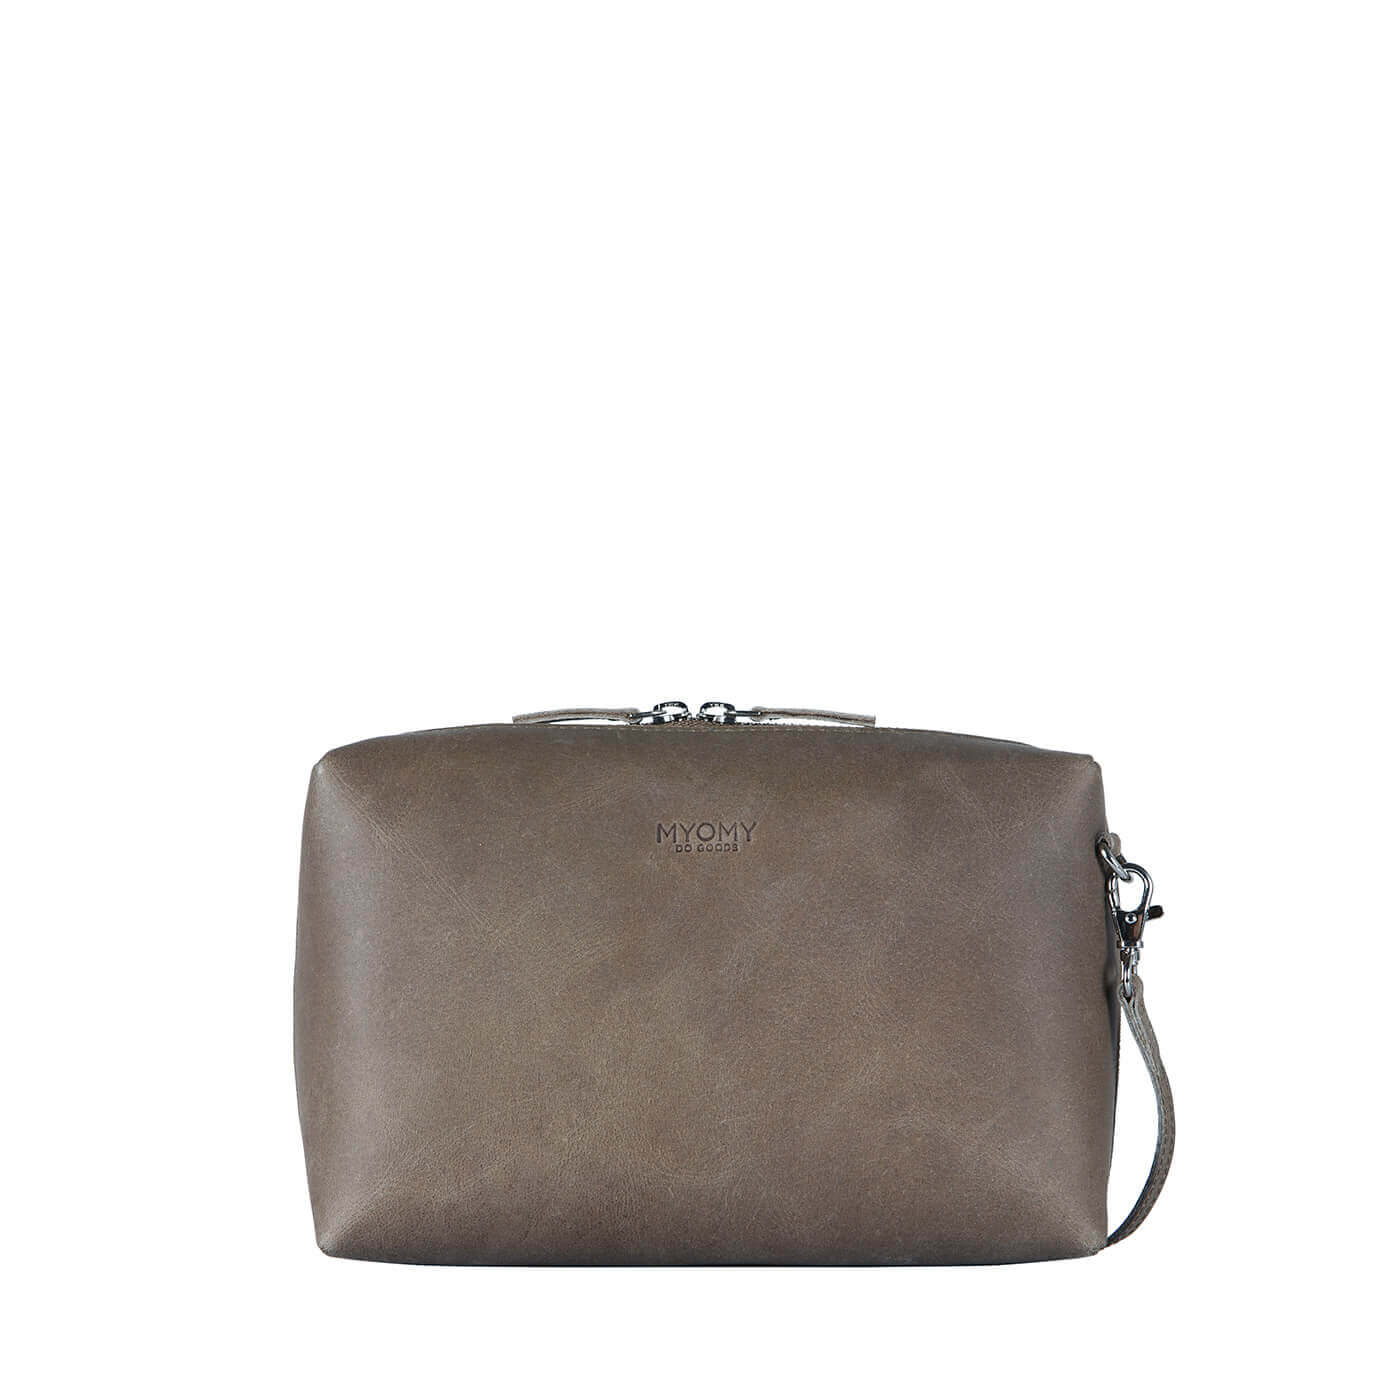 MY BOXY BAG Handbag - hunter taupe